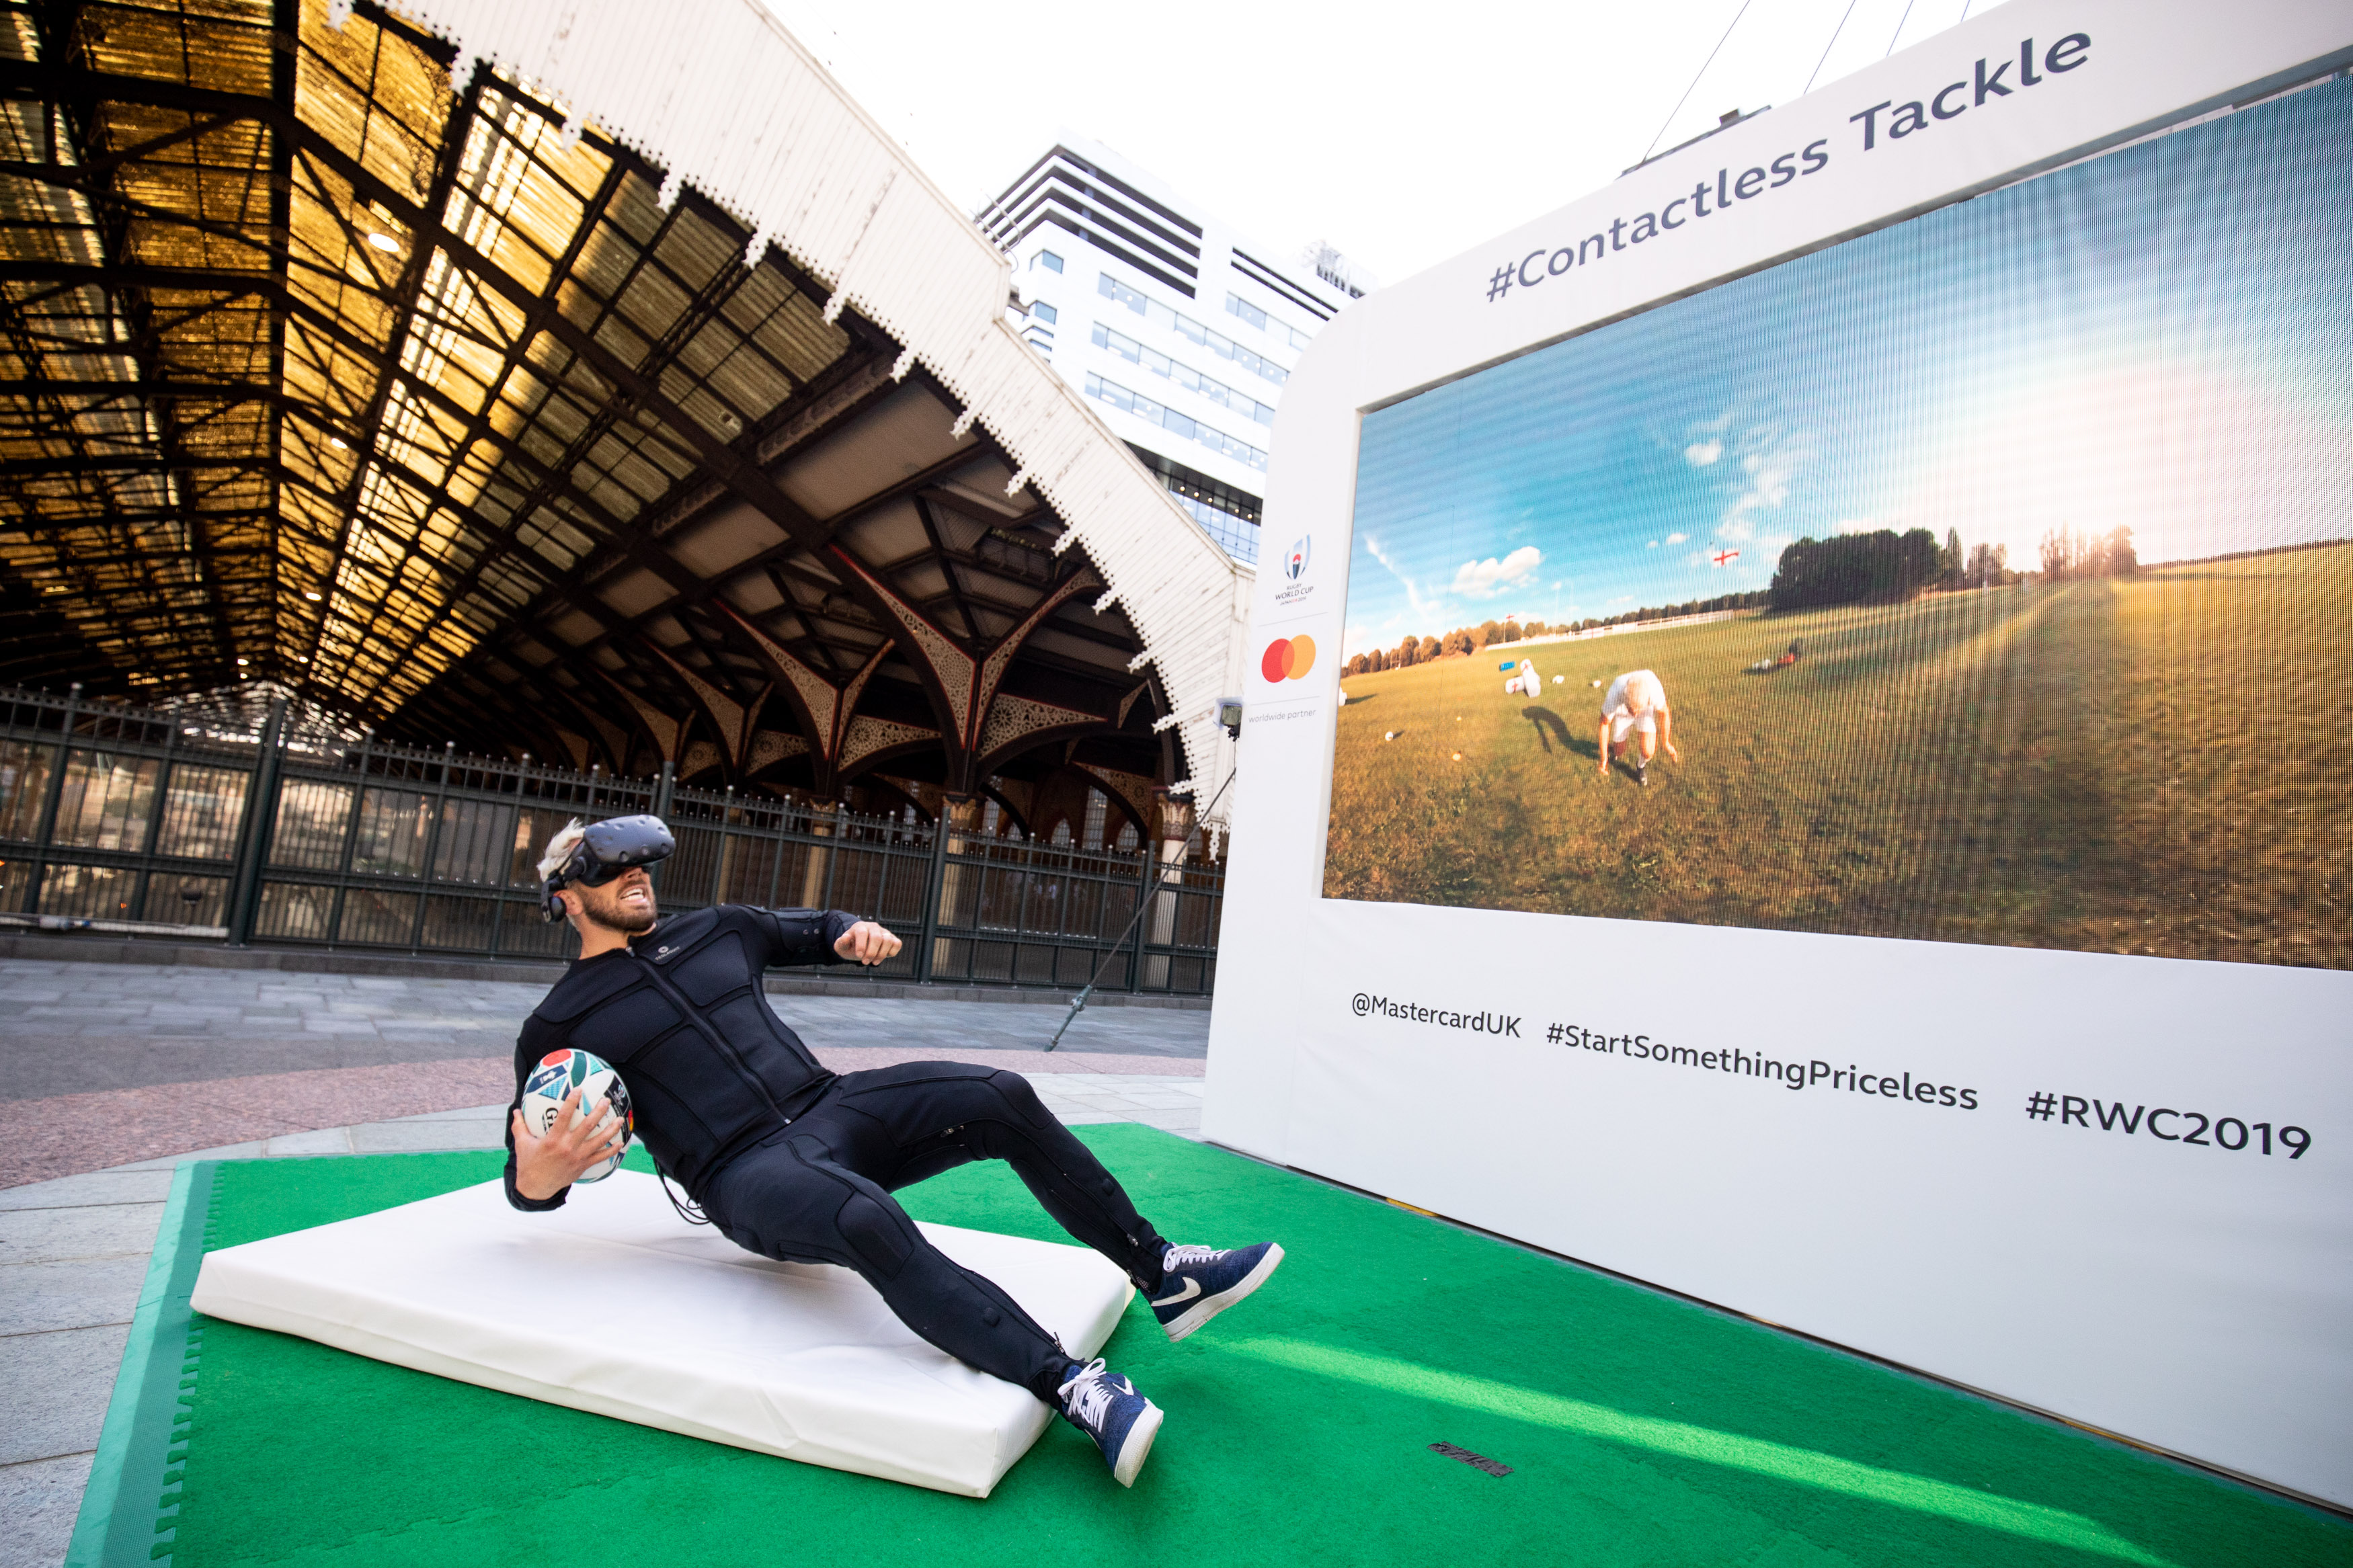 Chris Robshaw experiences the full force of being tackled by himself in Mastercard's Contactless Tackle